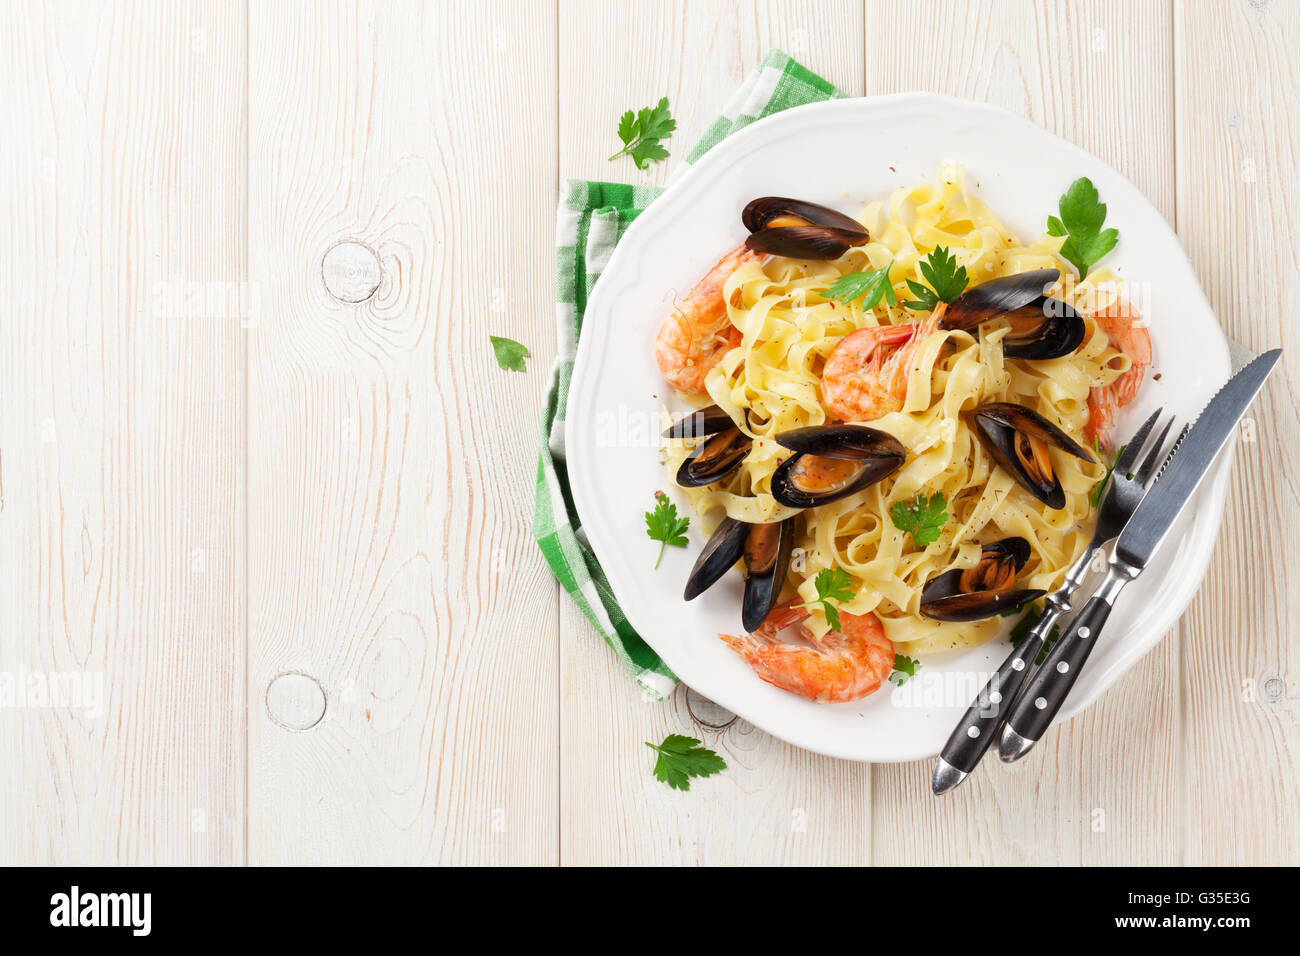 Pasta with seafood on wooden table. Mussels and prawns. Top view with copy space - Stock Image